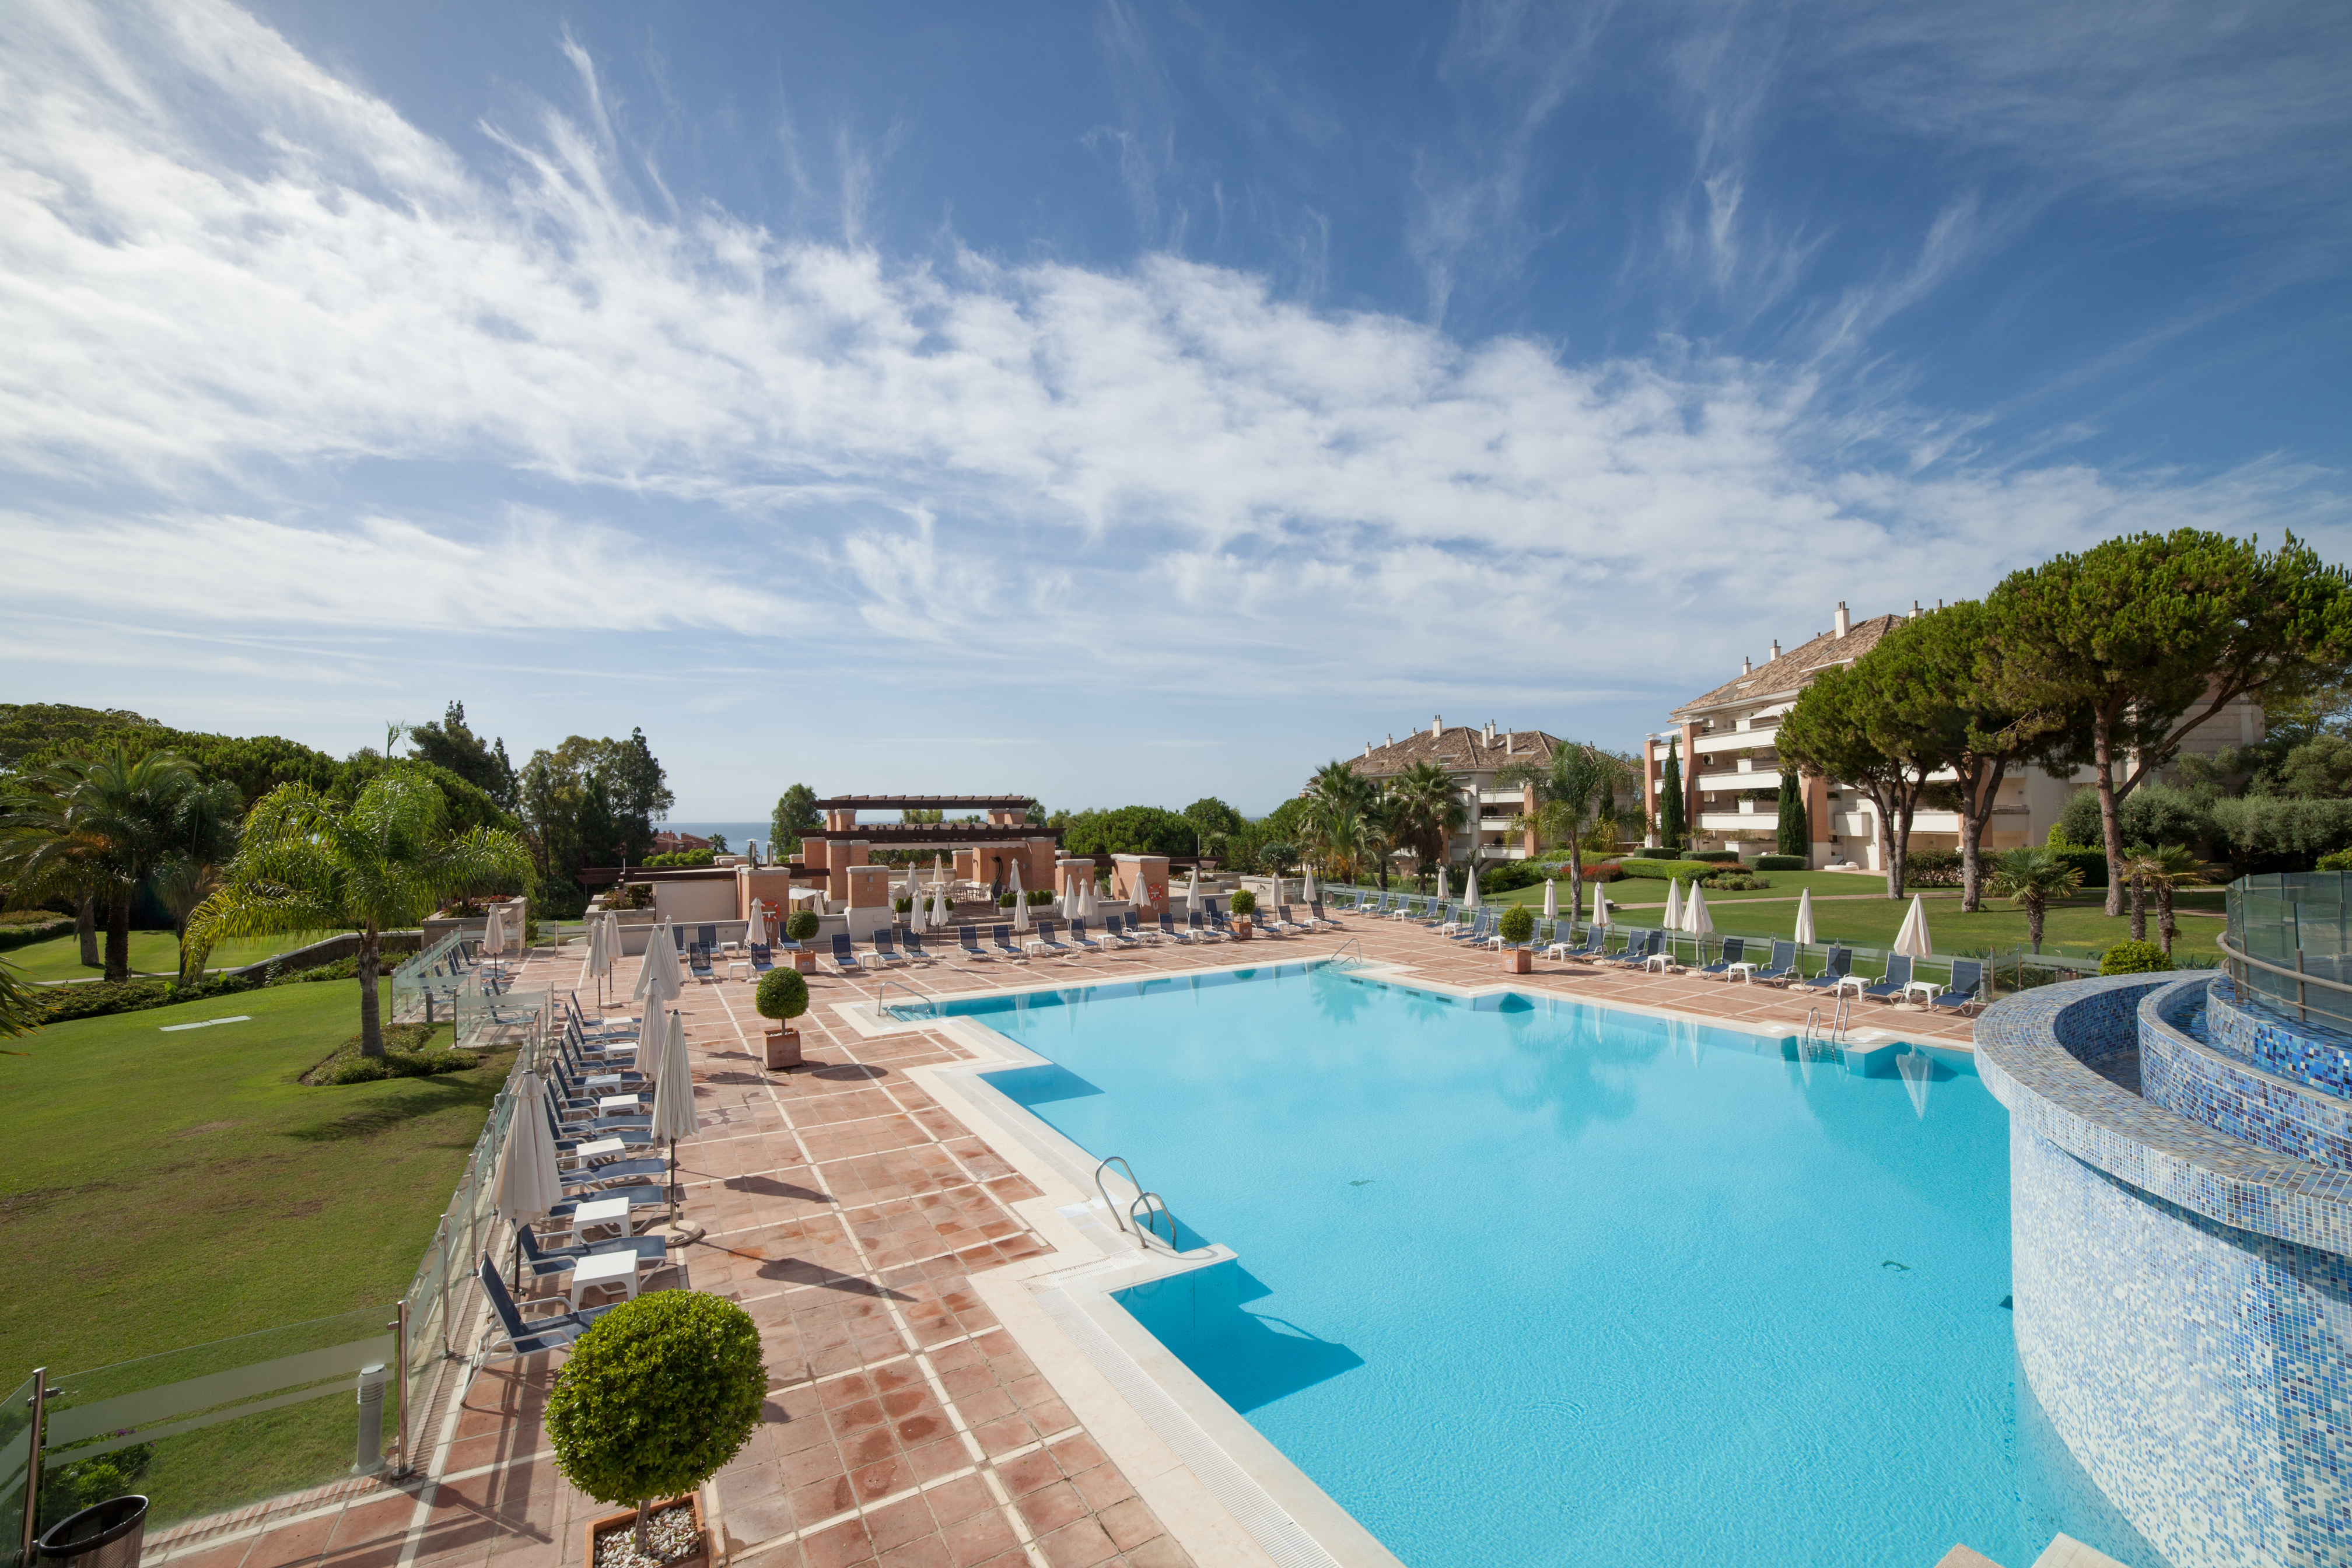 The best selection of apartments in Marbella's Golden Mile